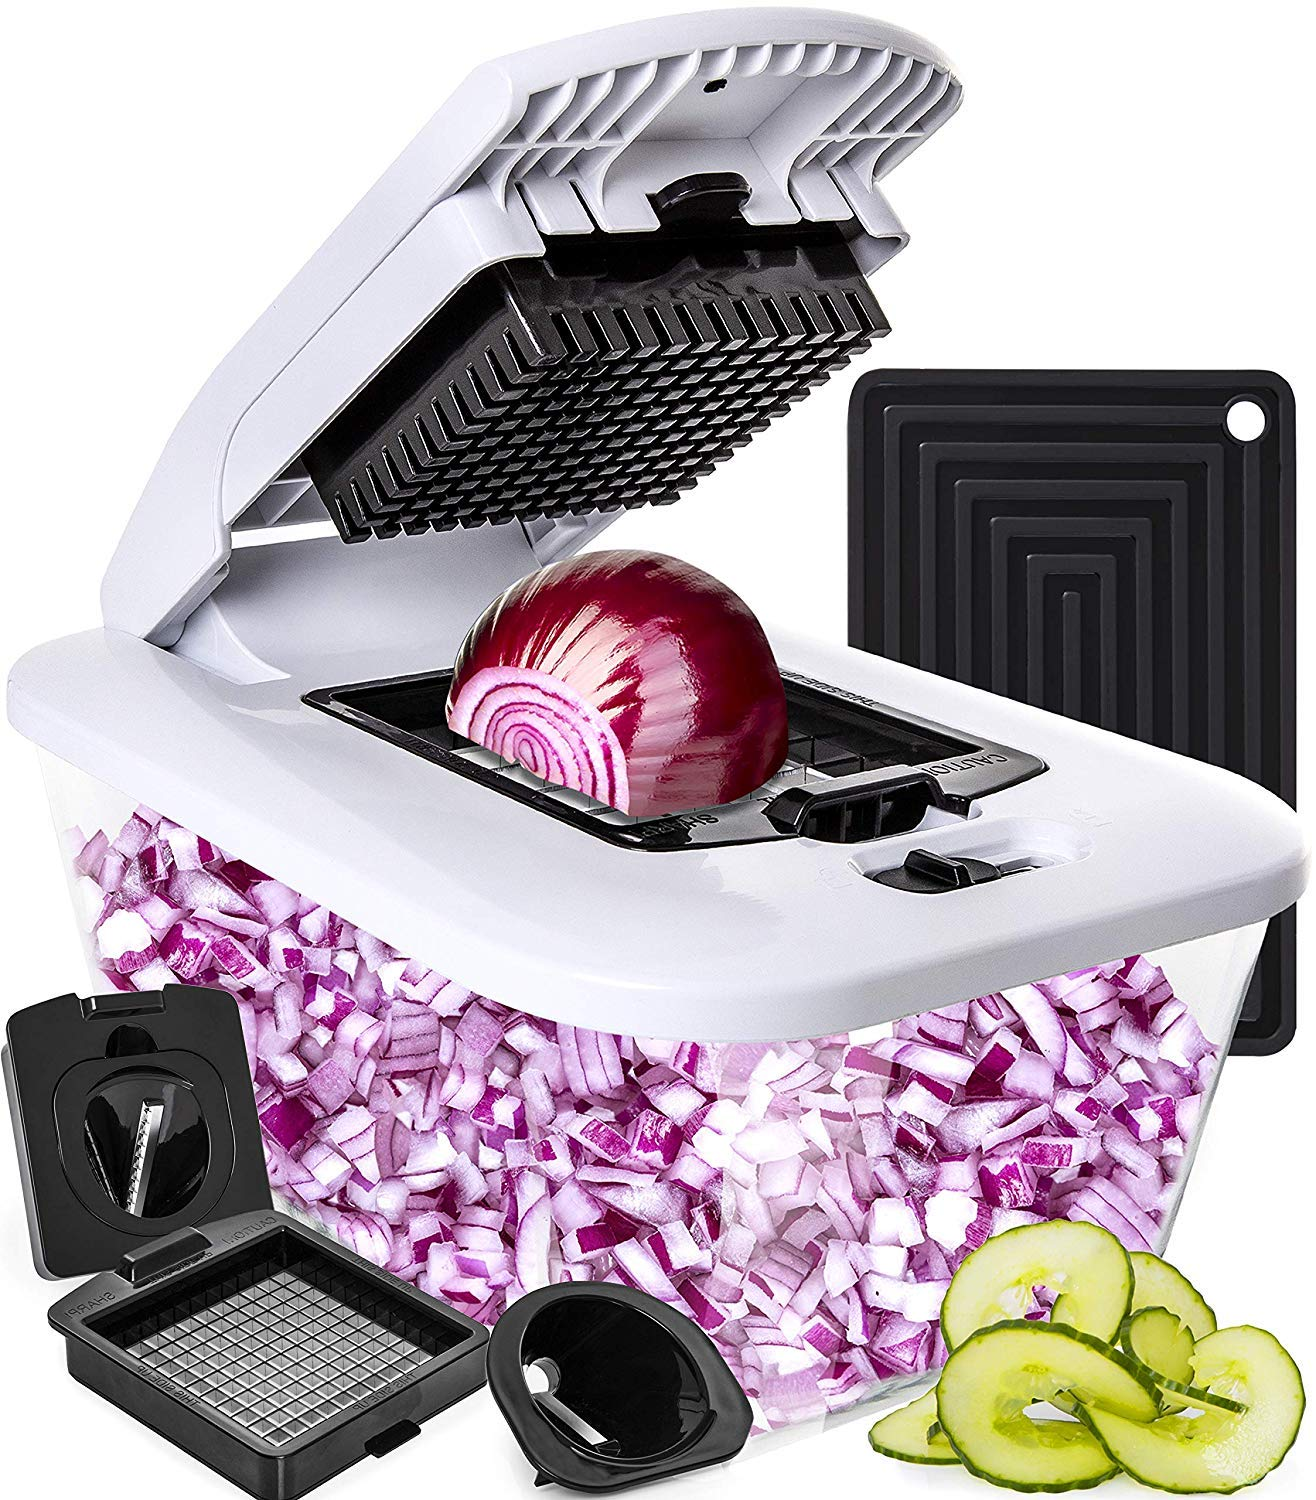 Fullstar vegetable chopper and spiralizer with large glass container